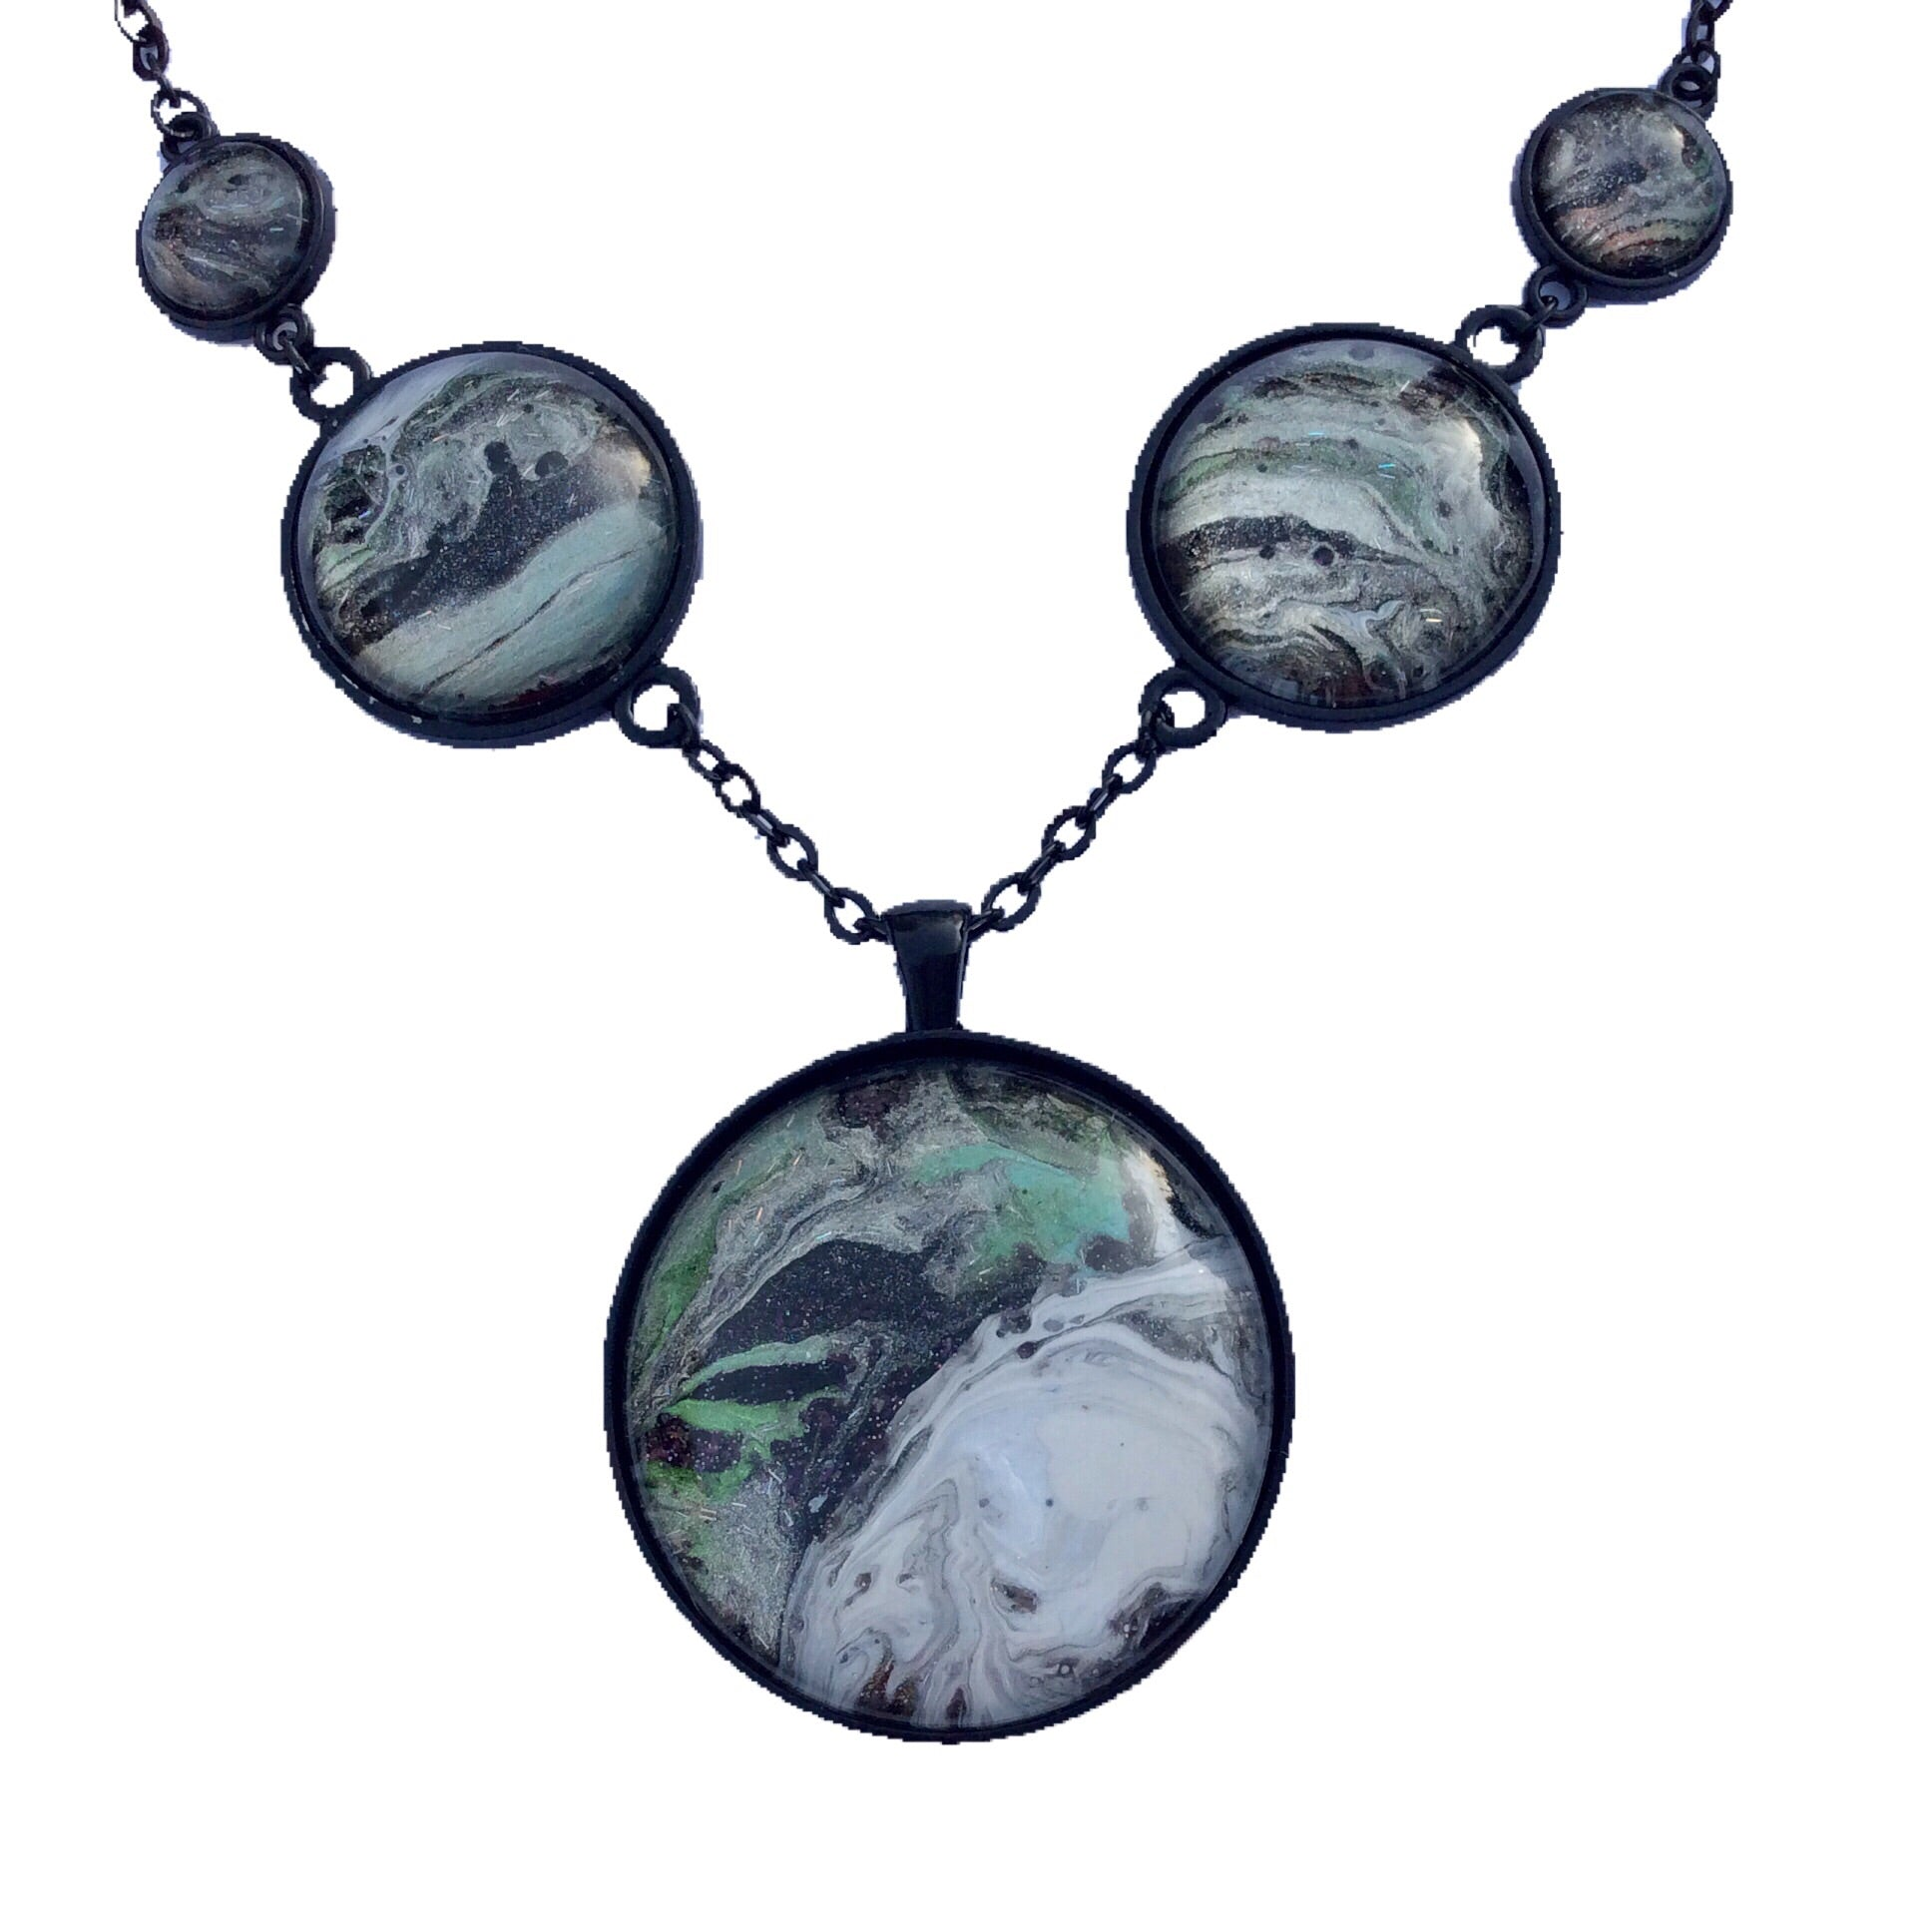 Aura Graduated Necklace, Galaxy Design-Jewelry-Fullamoon Designs